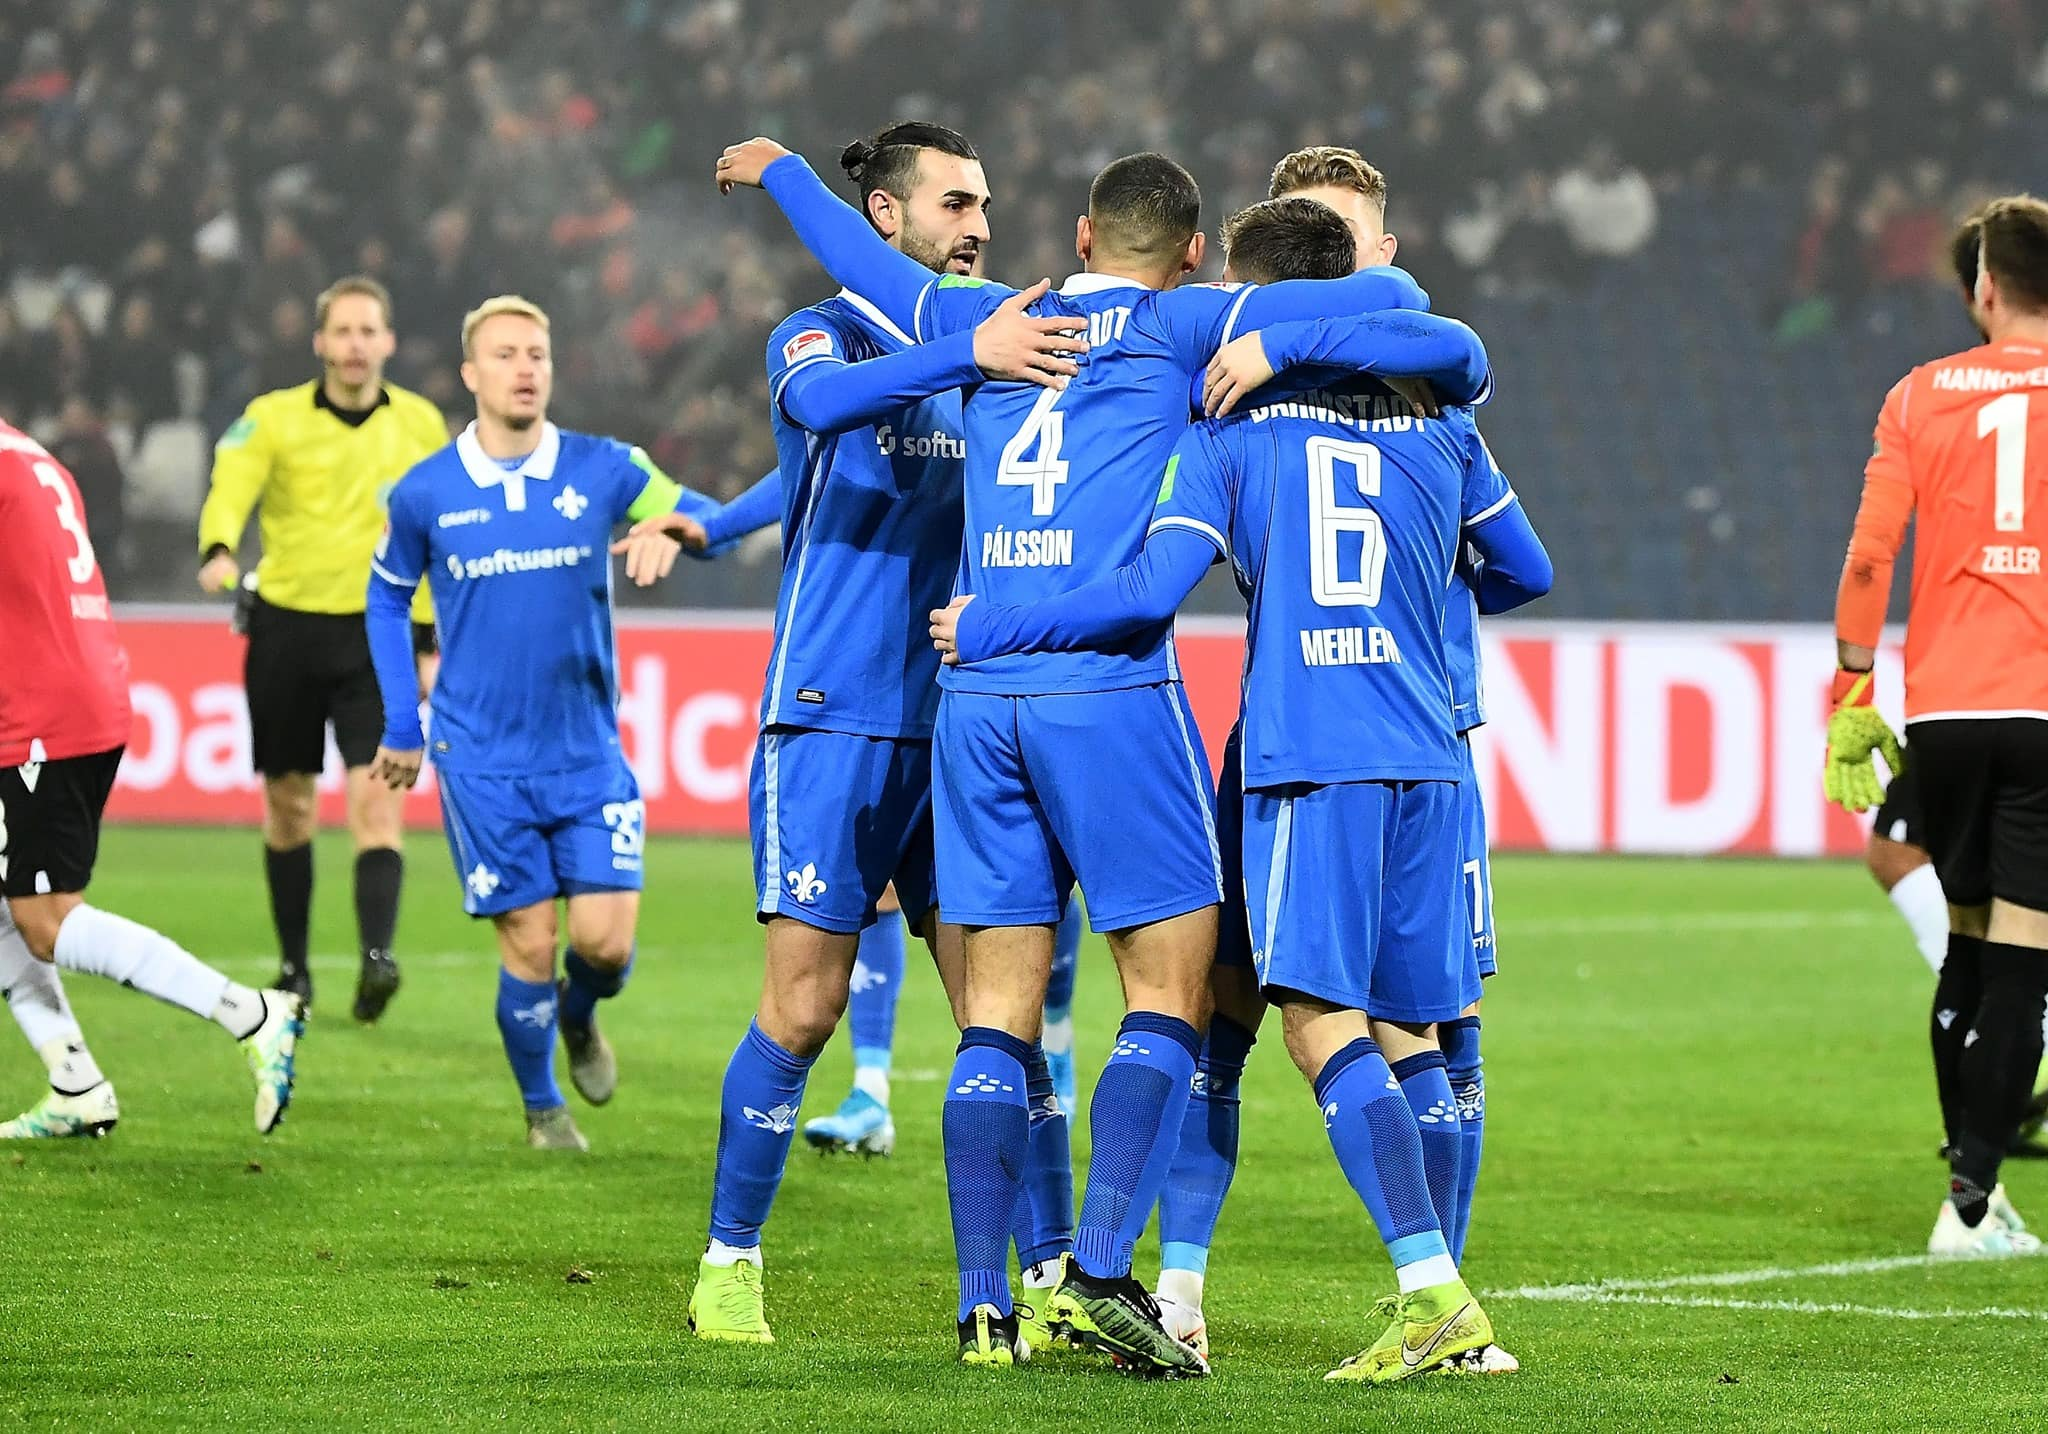 soi-keo-darmstadt-vs-greuther-furth-vao-23h30-ngay-29-5-2020-1